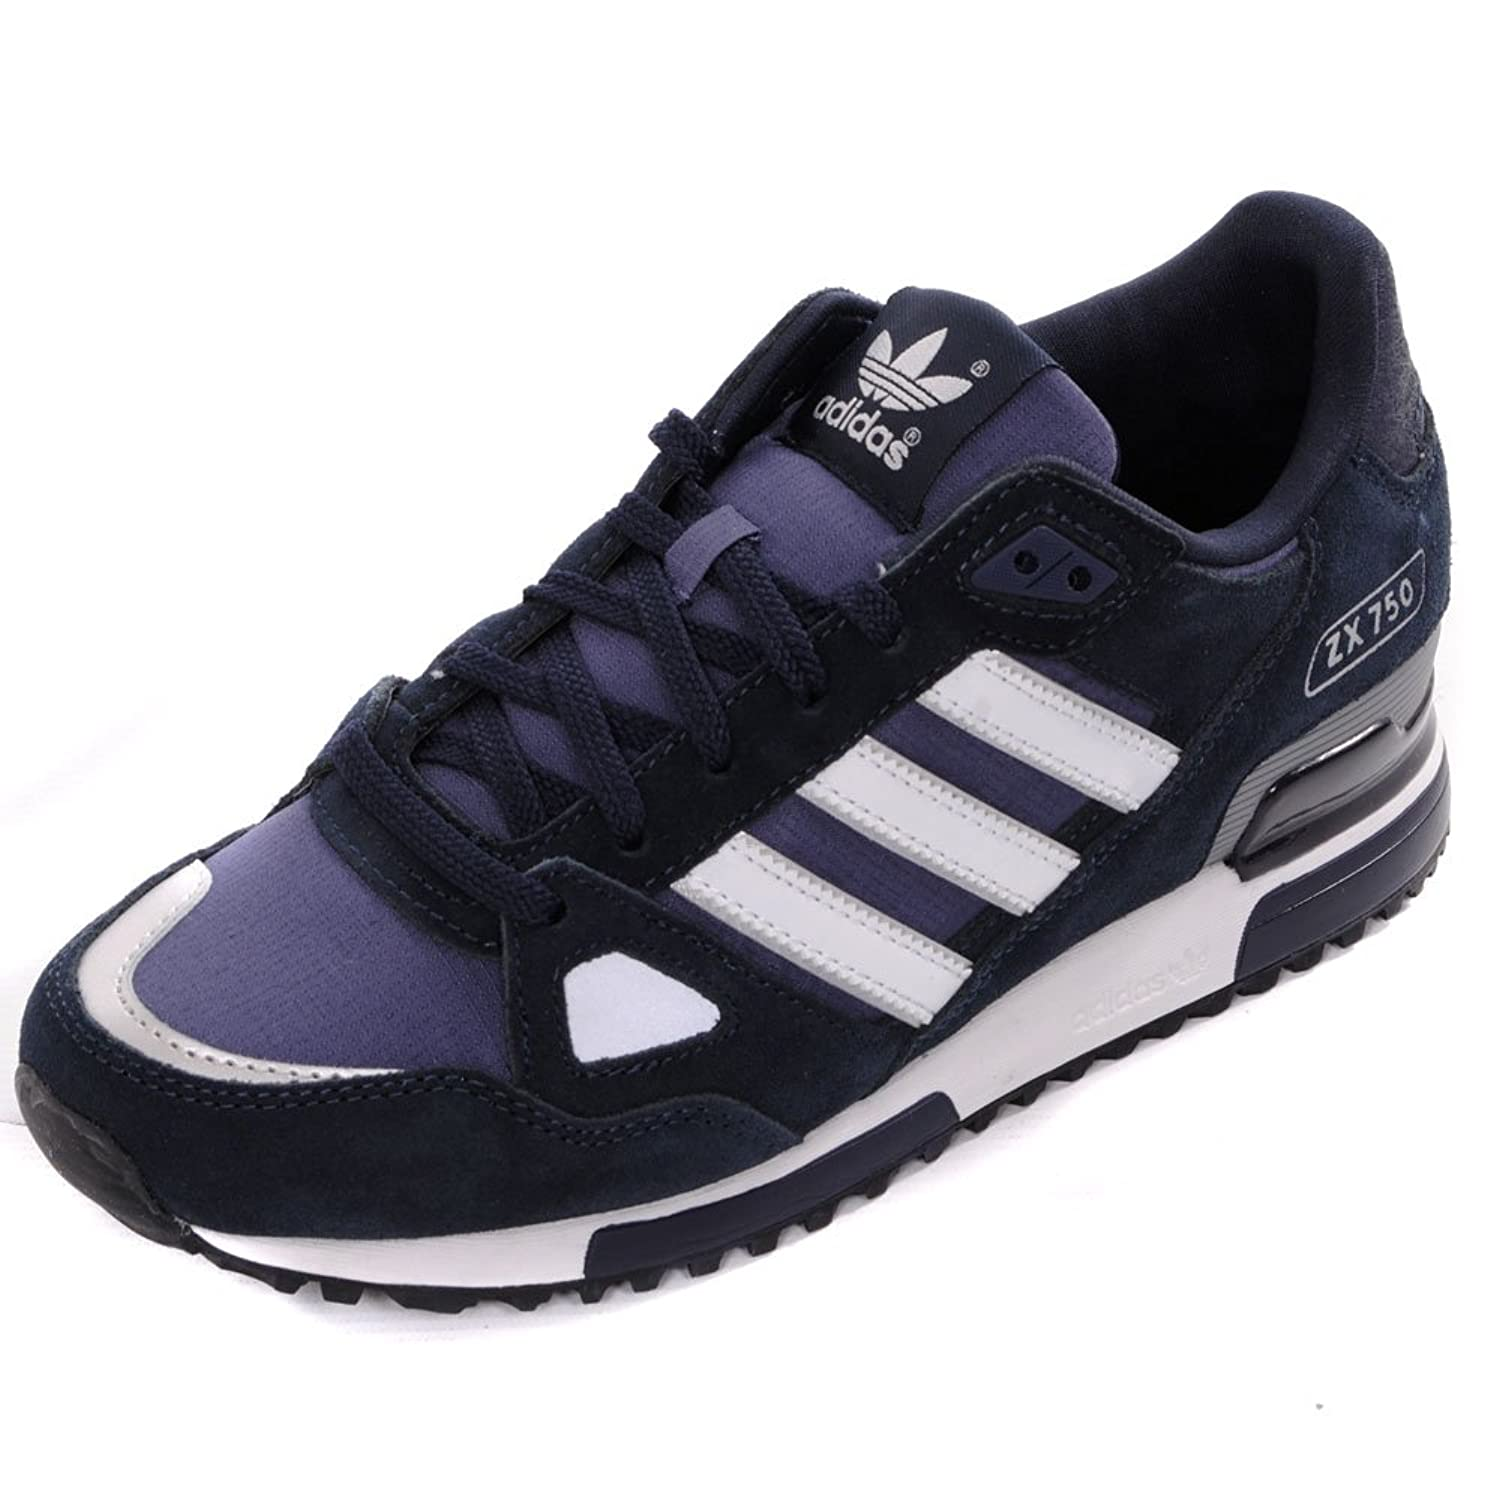 quality design c602b bb2e7 ... australia adidas originals zx 750 trainers navy white 9545e 7f125